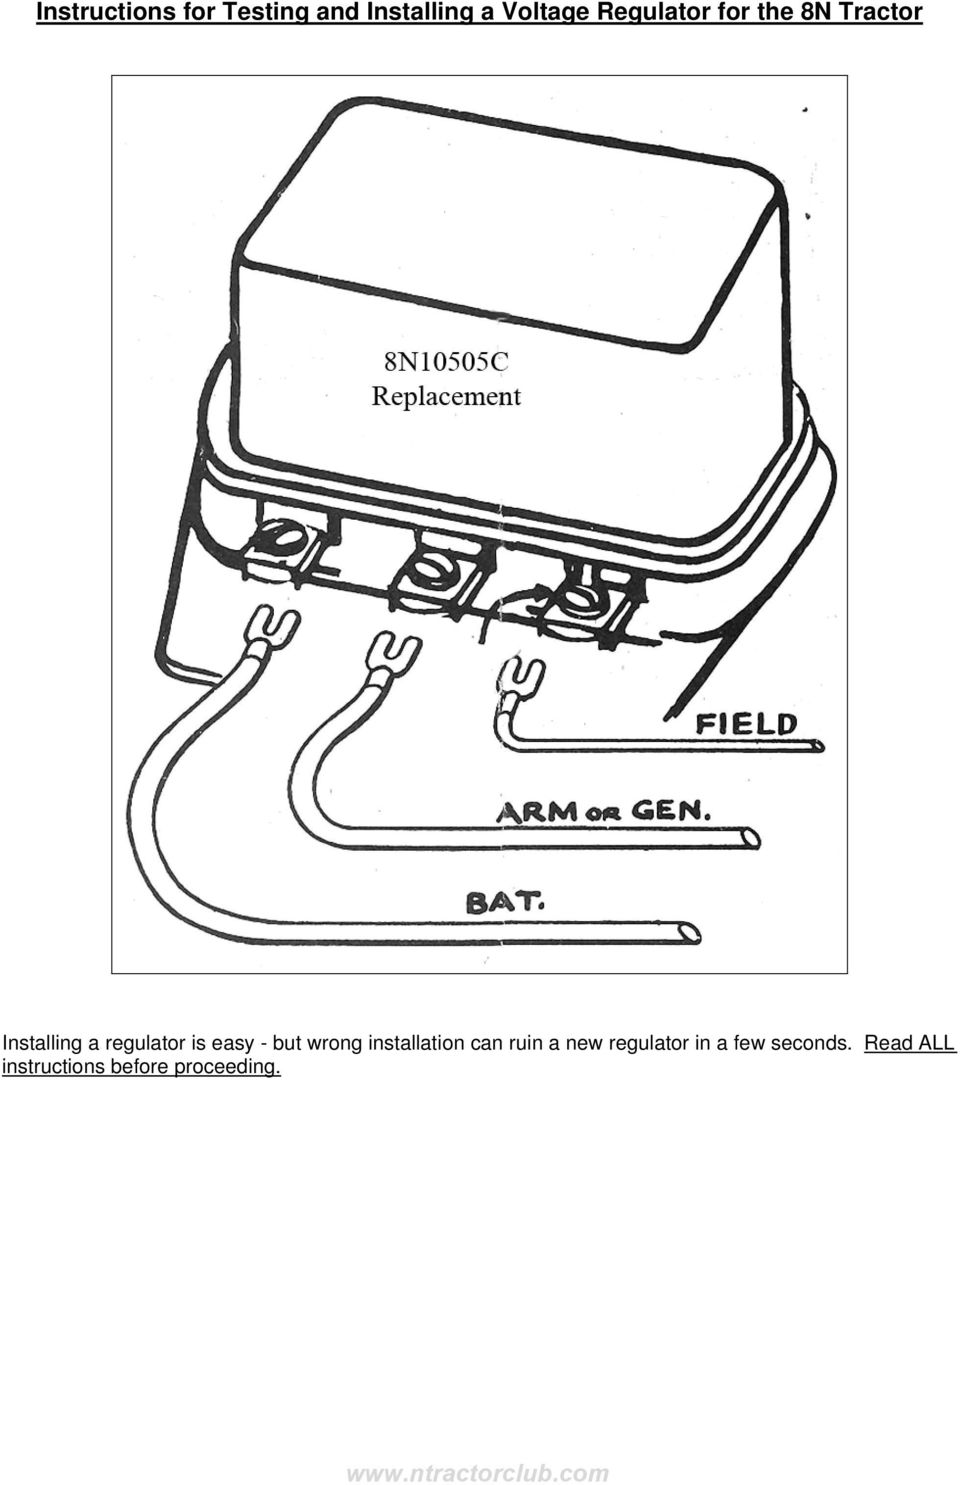 Instructions for Testing and Installing a Voltage Regulator for the